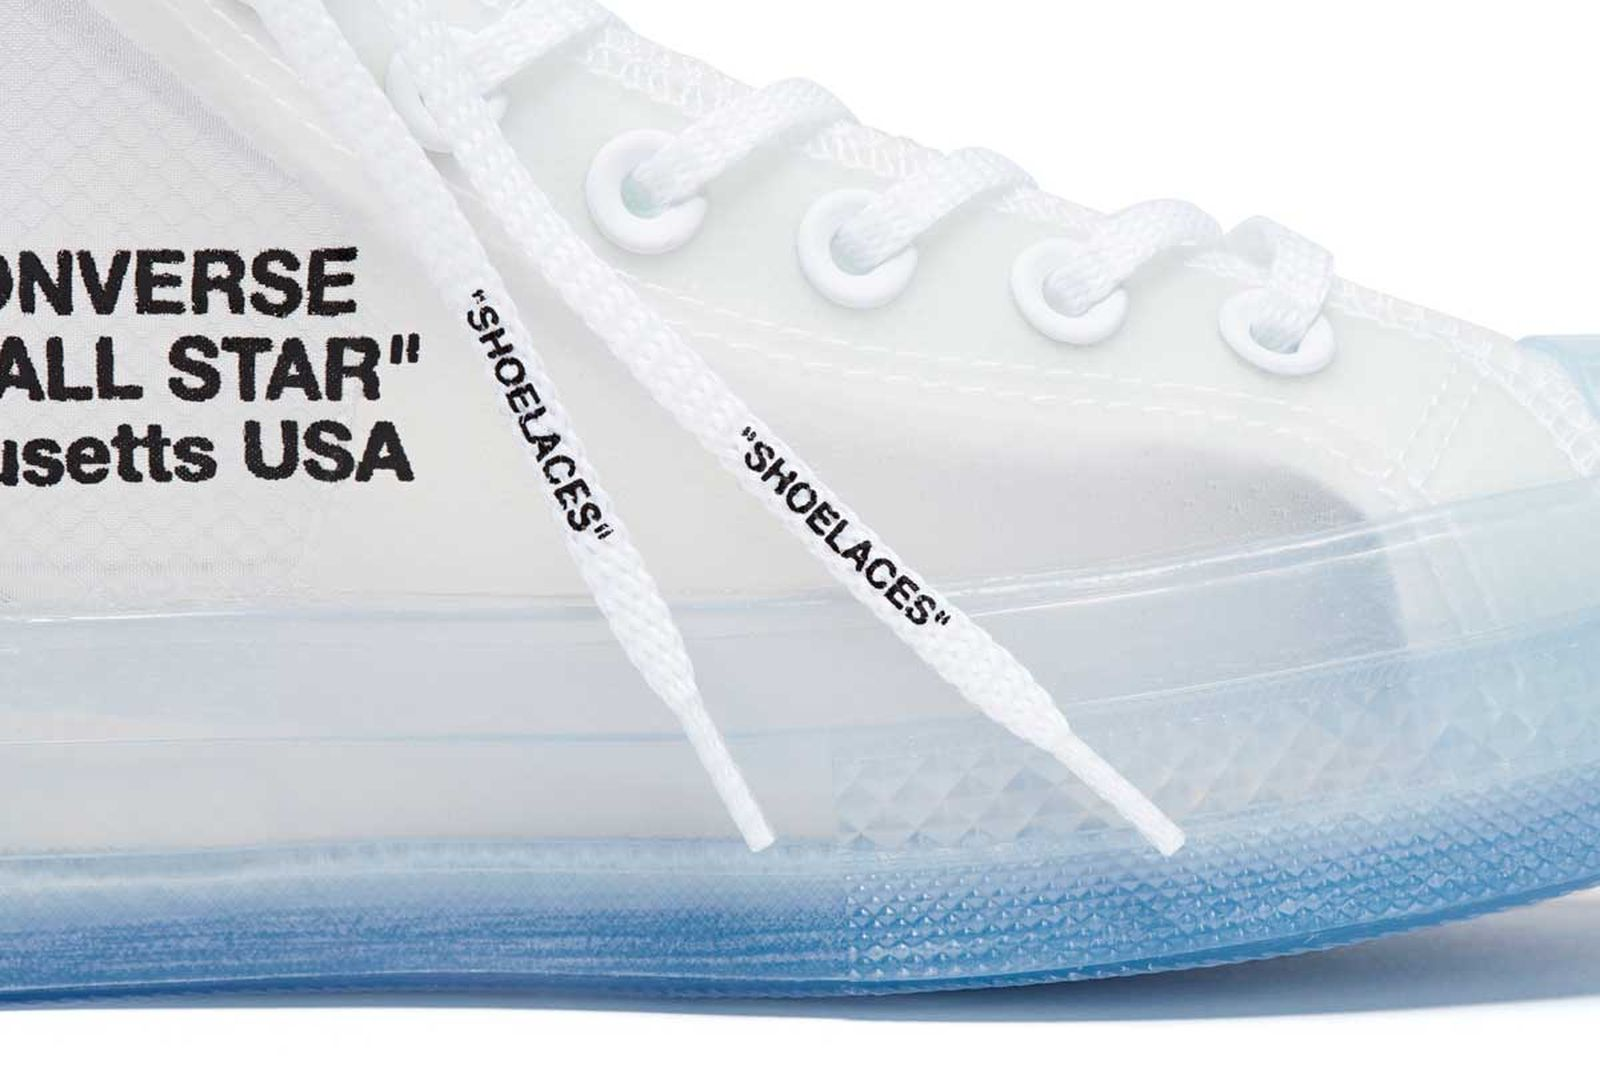 virgil-abloh-converse-all-star-release-date-price-2018-010